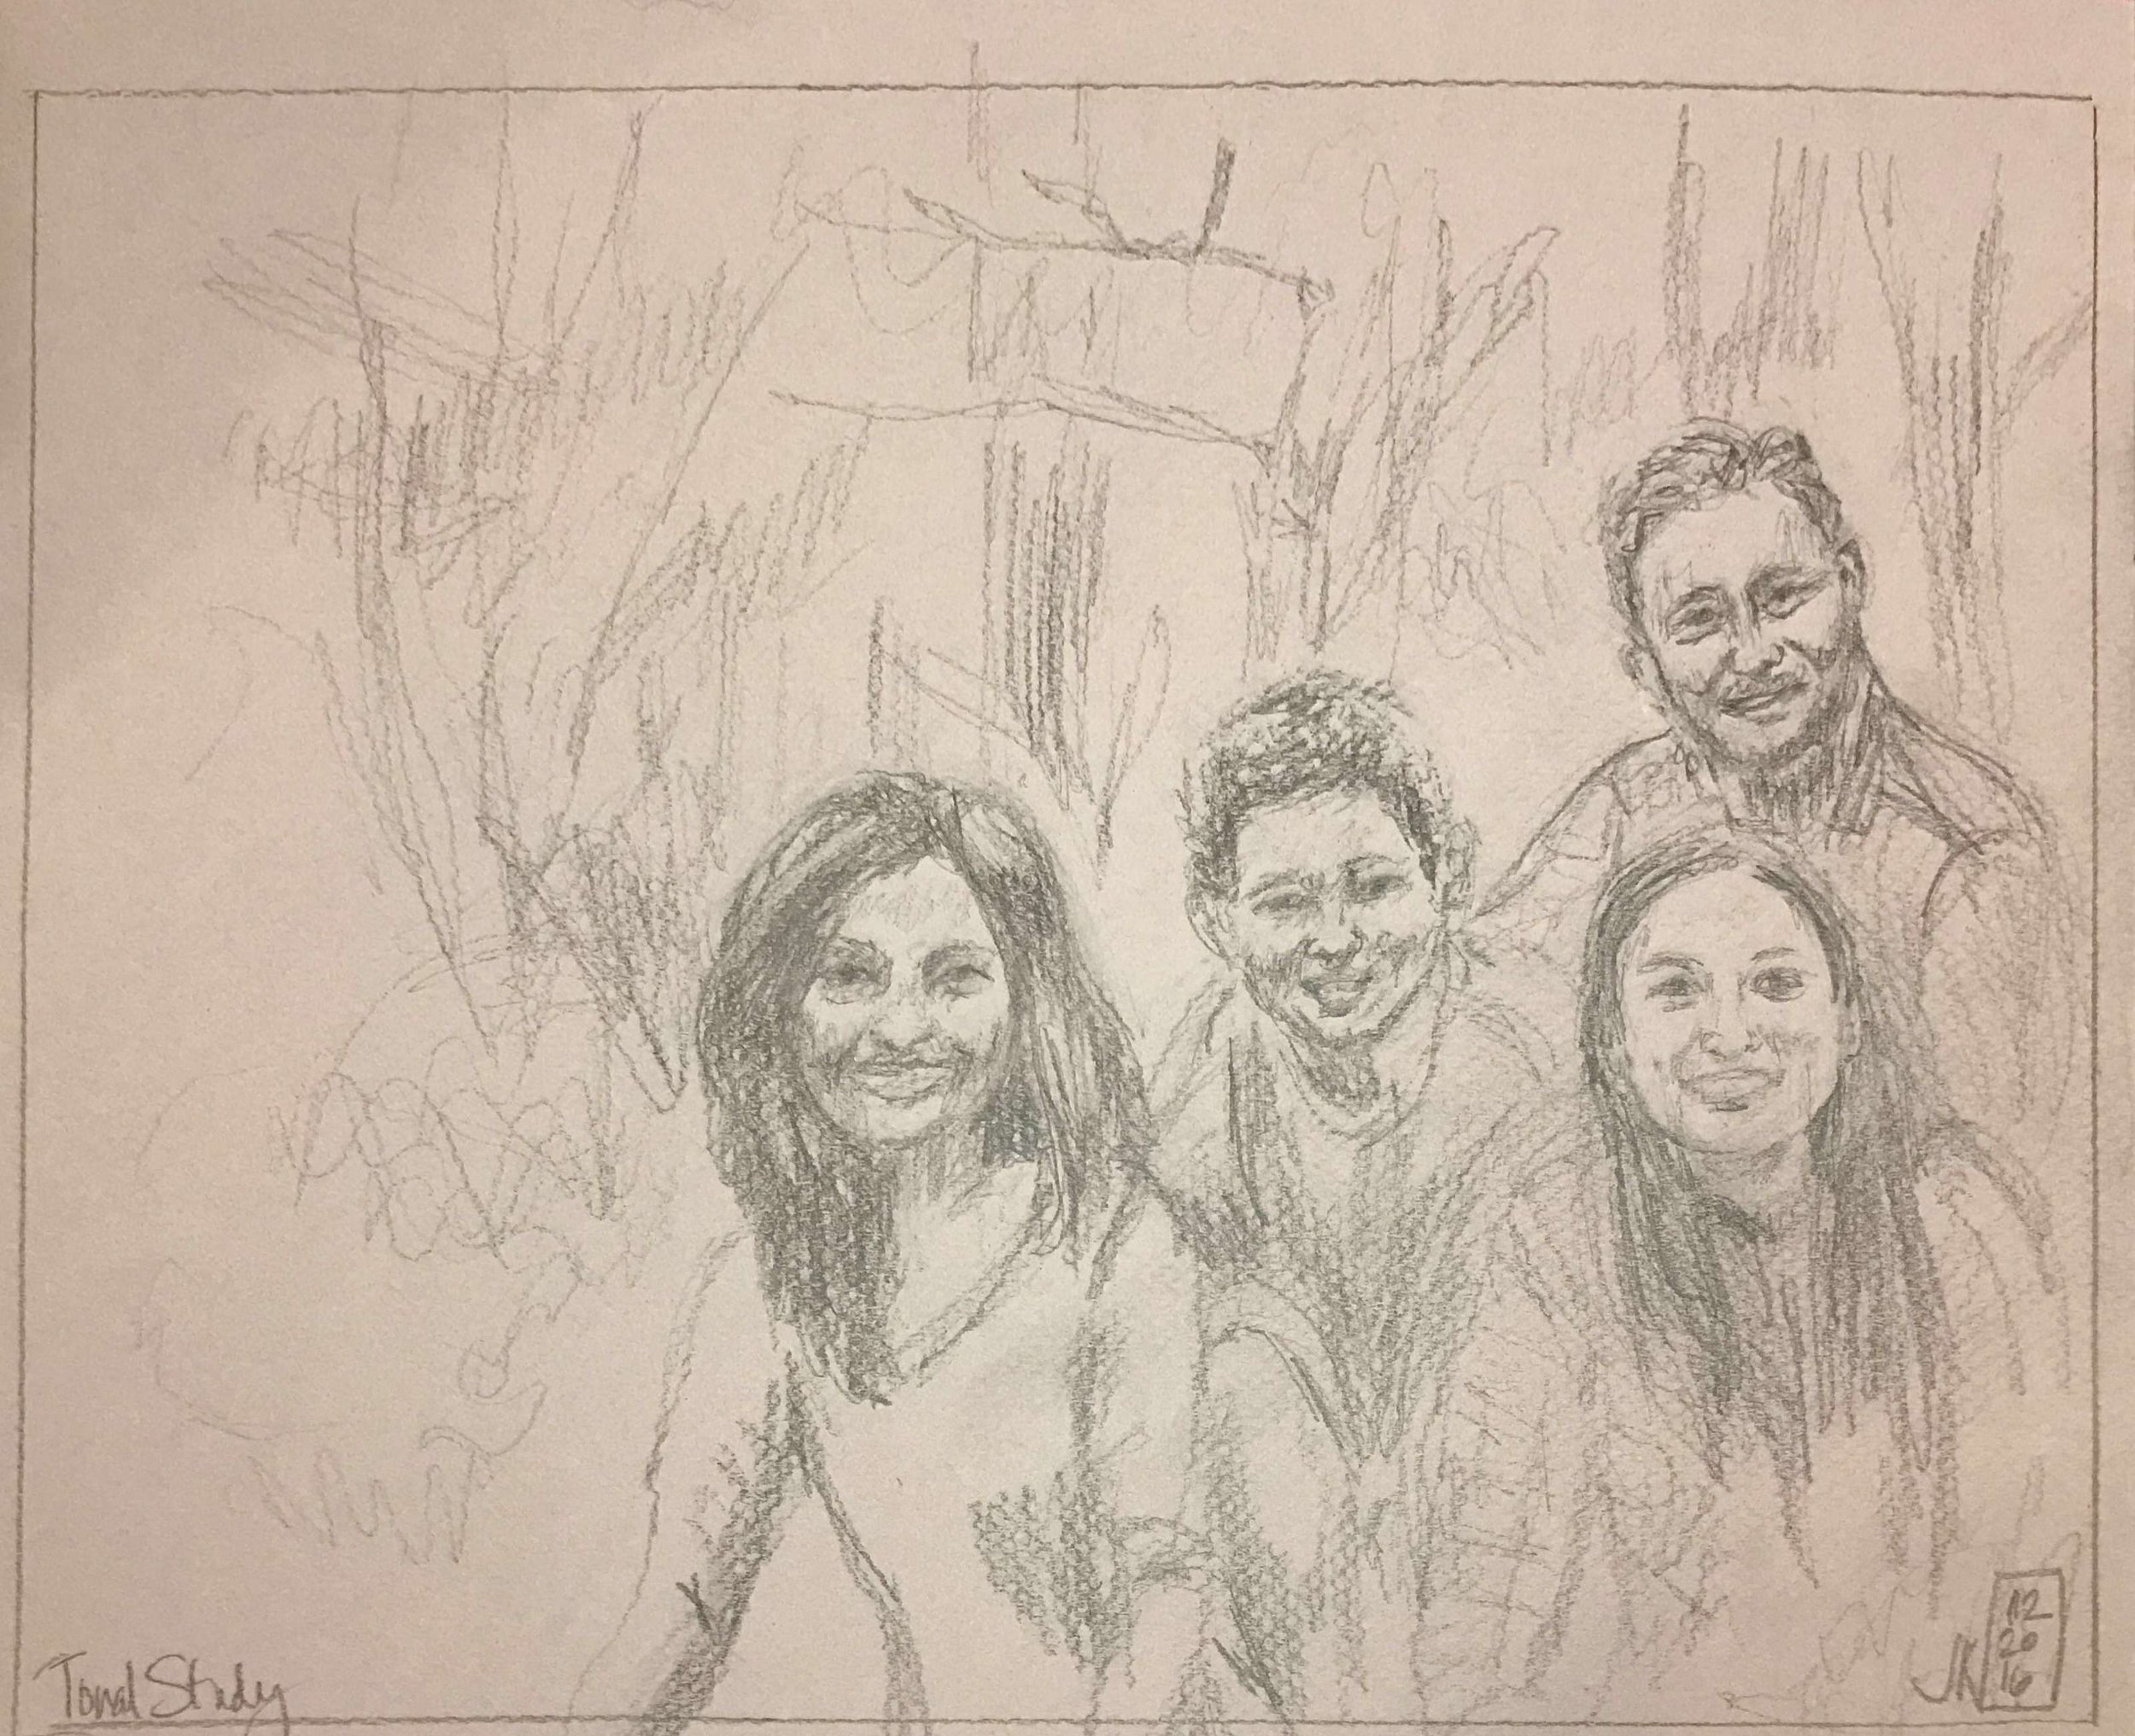 I thought about getting a closer view of the family in this next tonal study